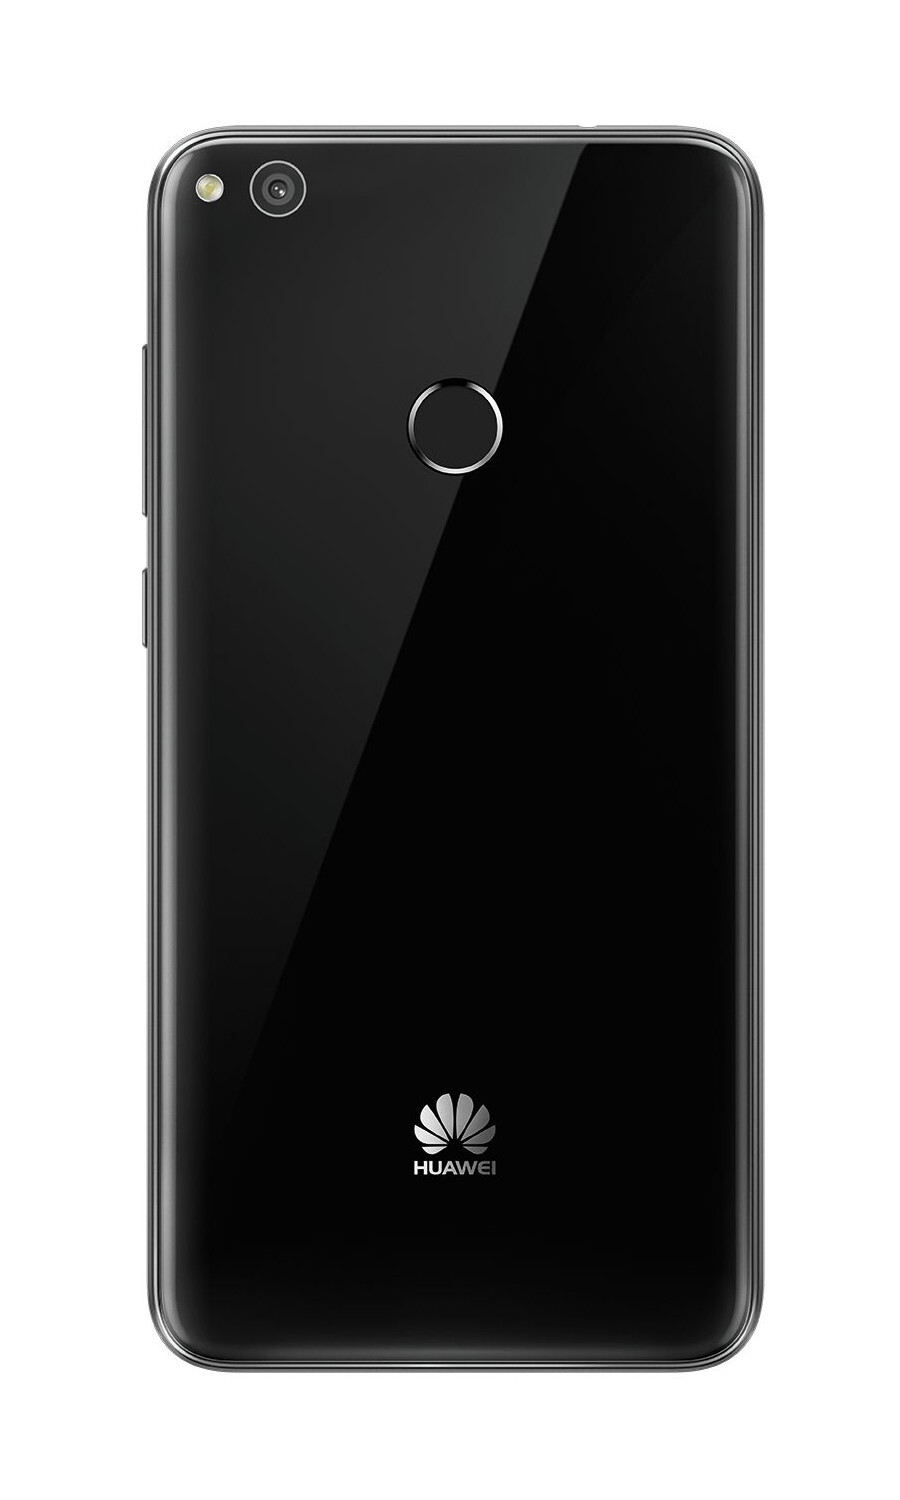 Huawei P8 Lite 2017 Coming To The Uk On February 1